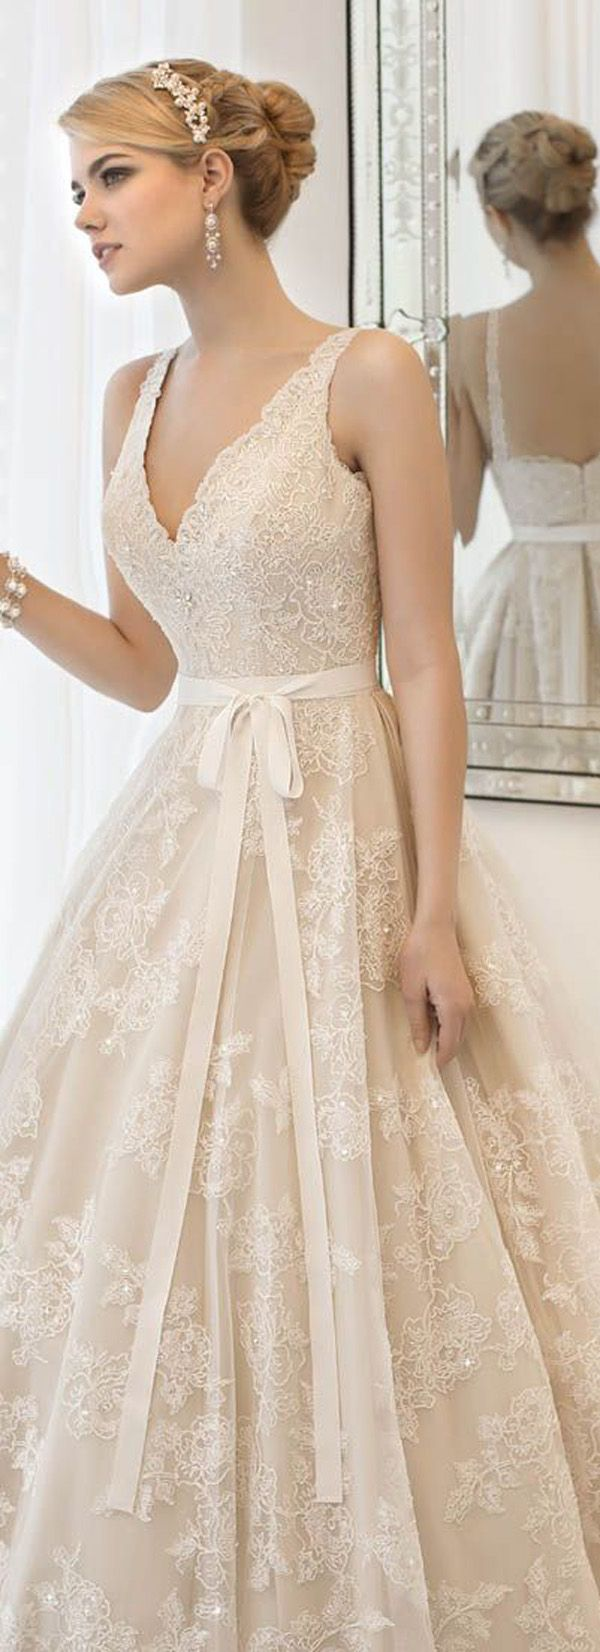 Lace Wedding Dresses For   On Bidorbuy : Ball gown wedding dresses vintage lace g